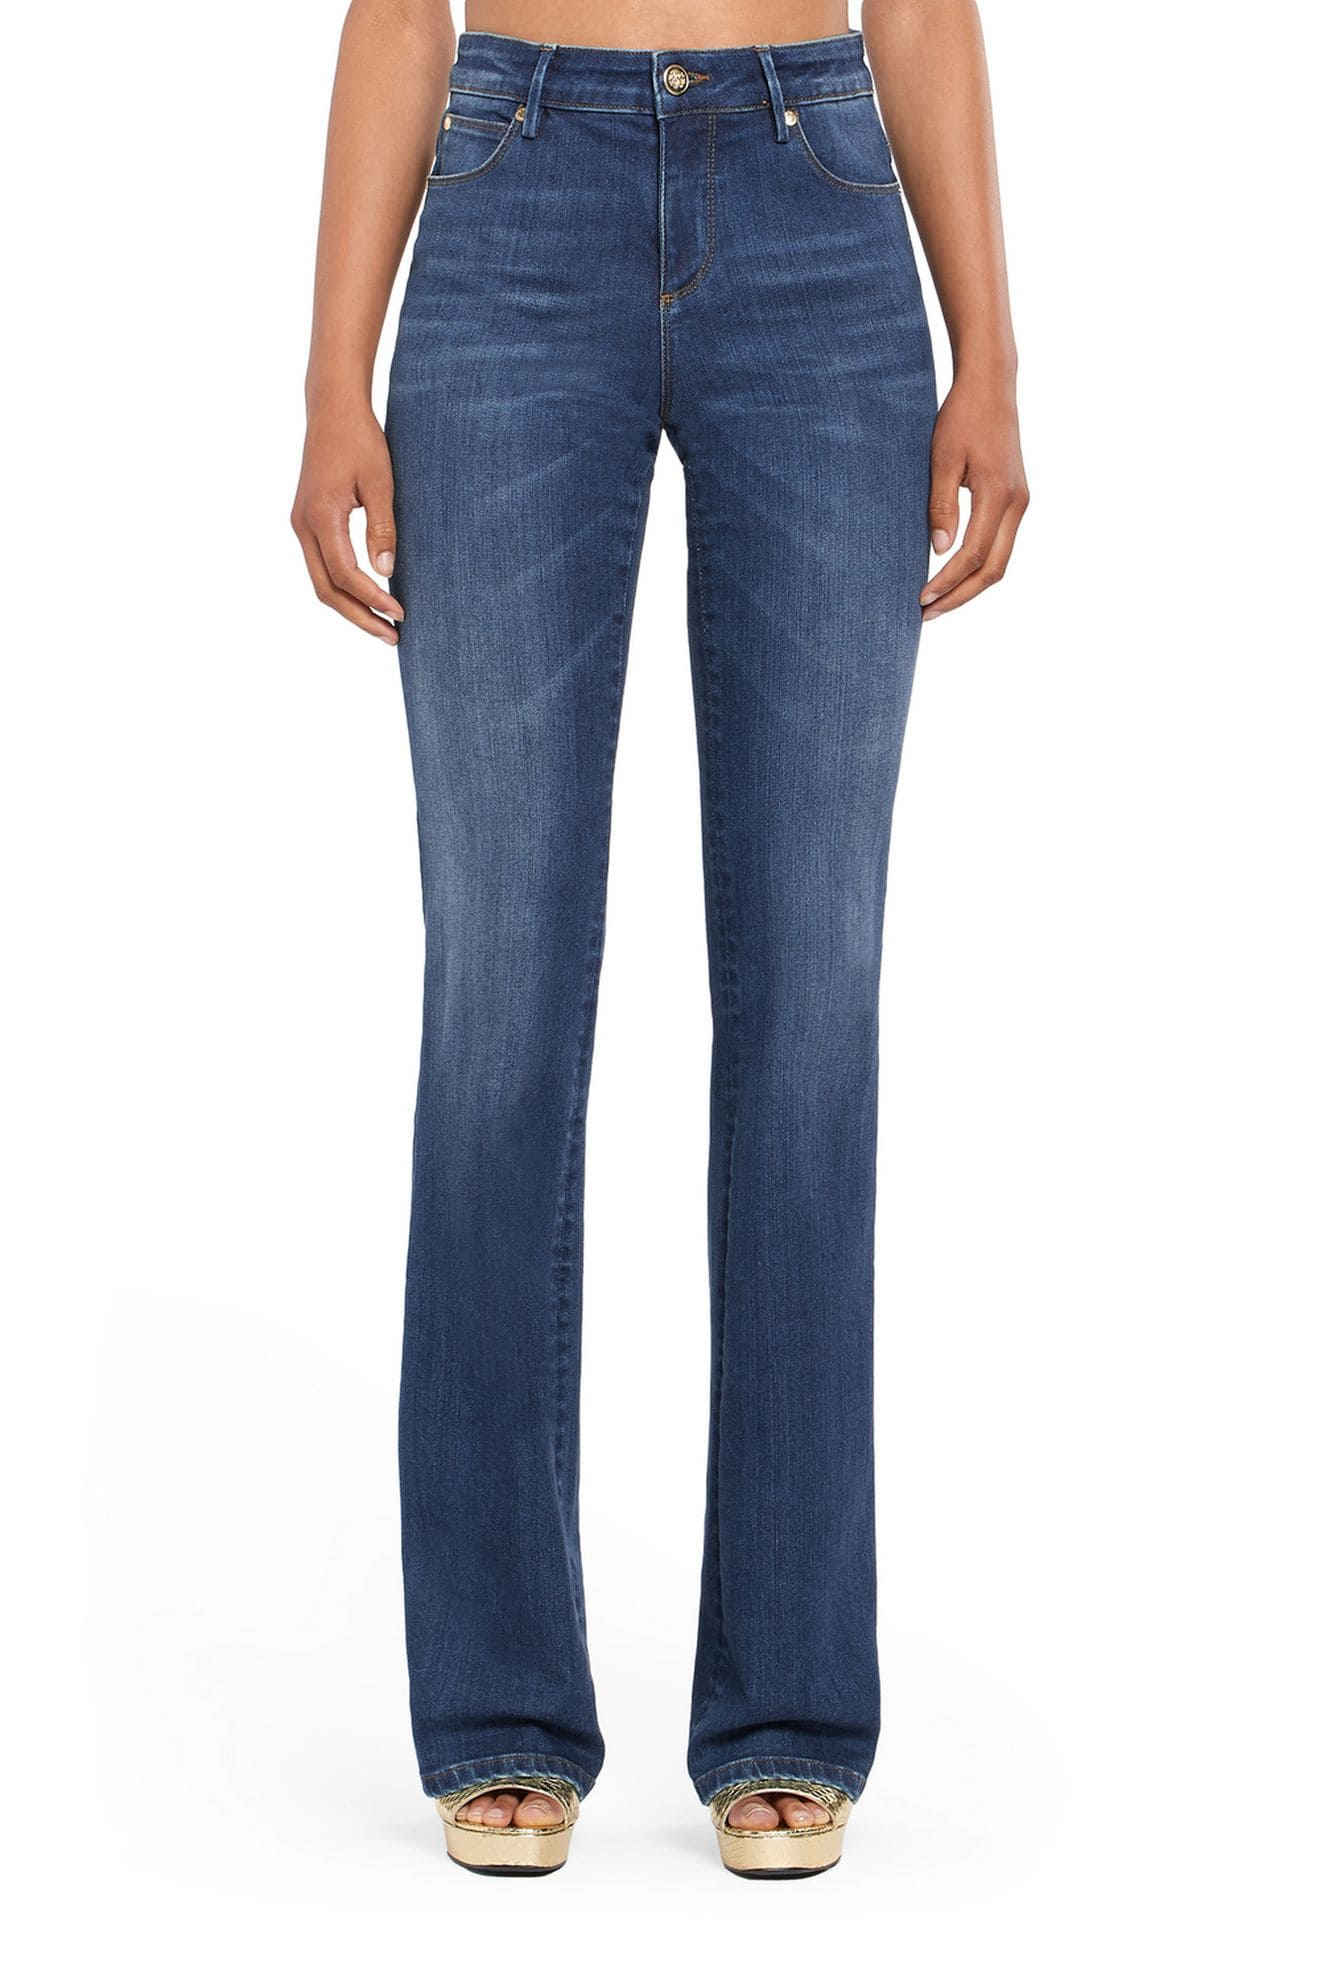 roberto-cavalli-blue-flared-jeans_13150667_15611957_1320